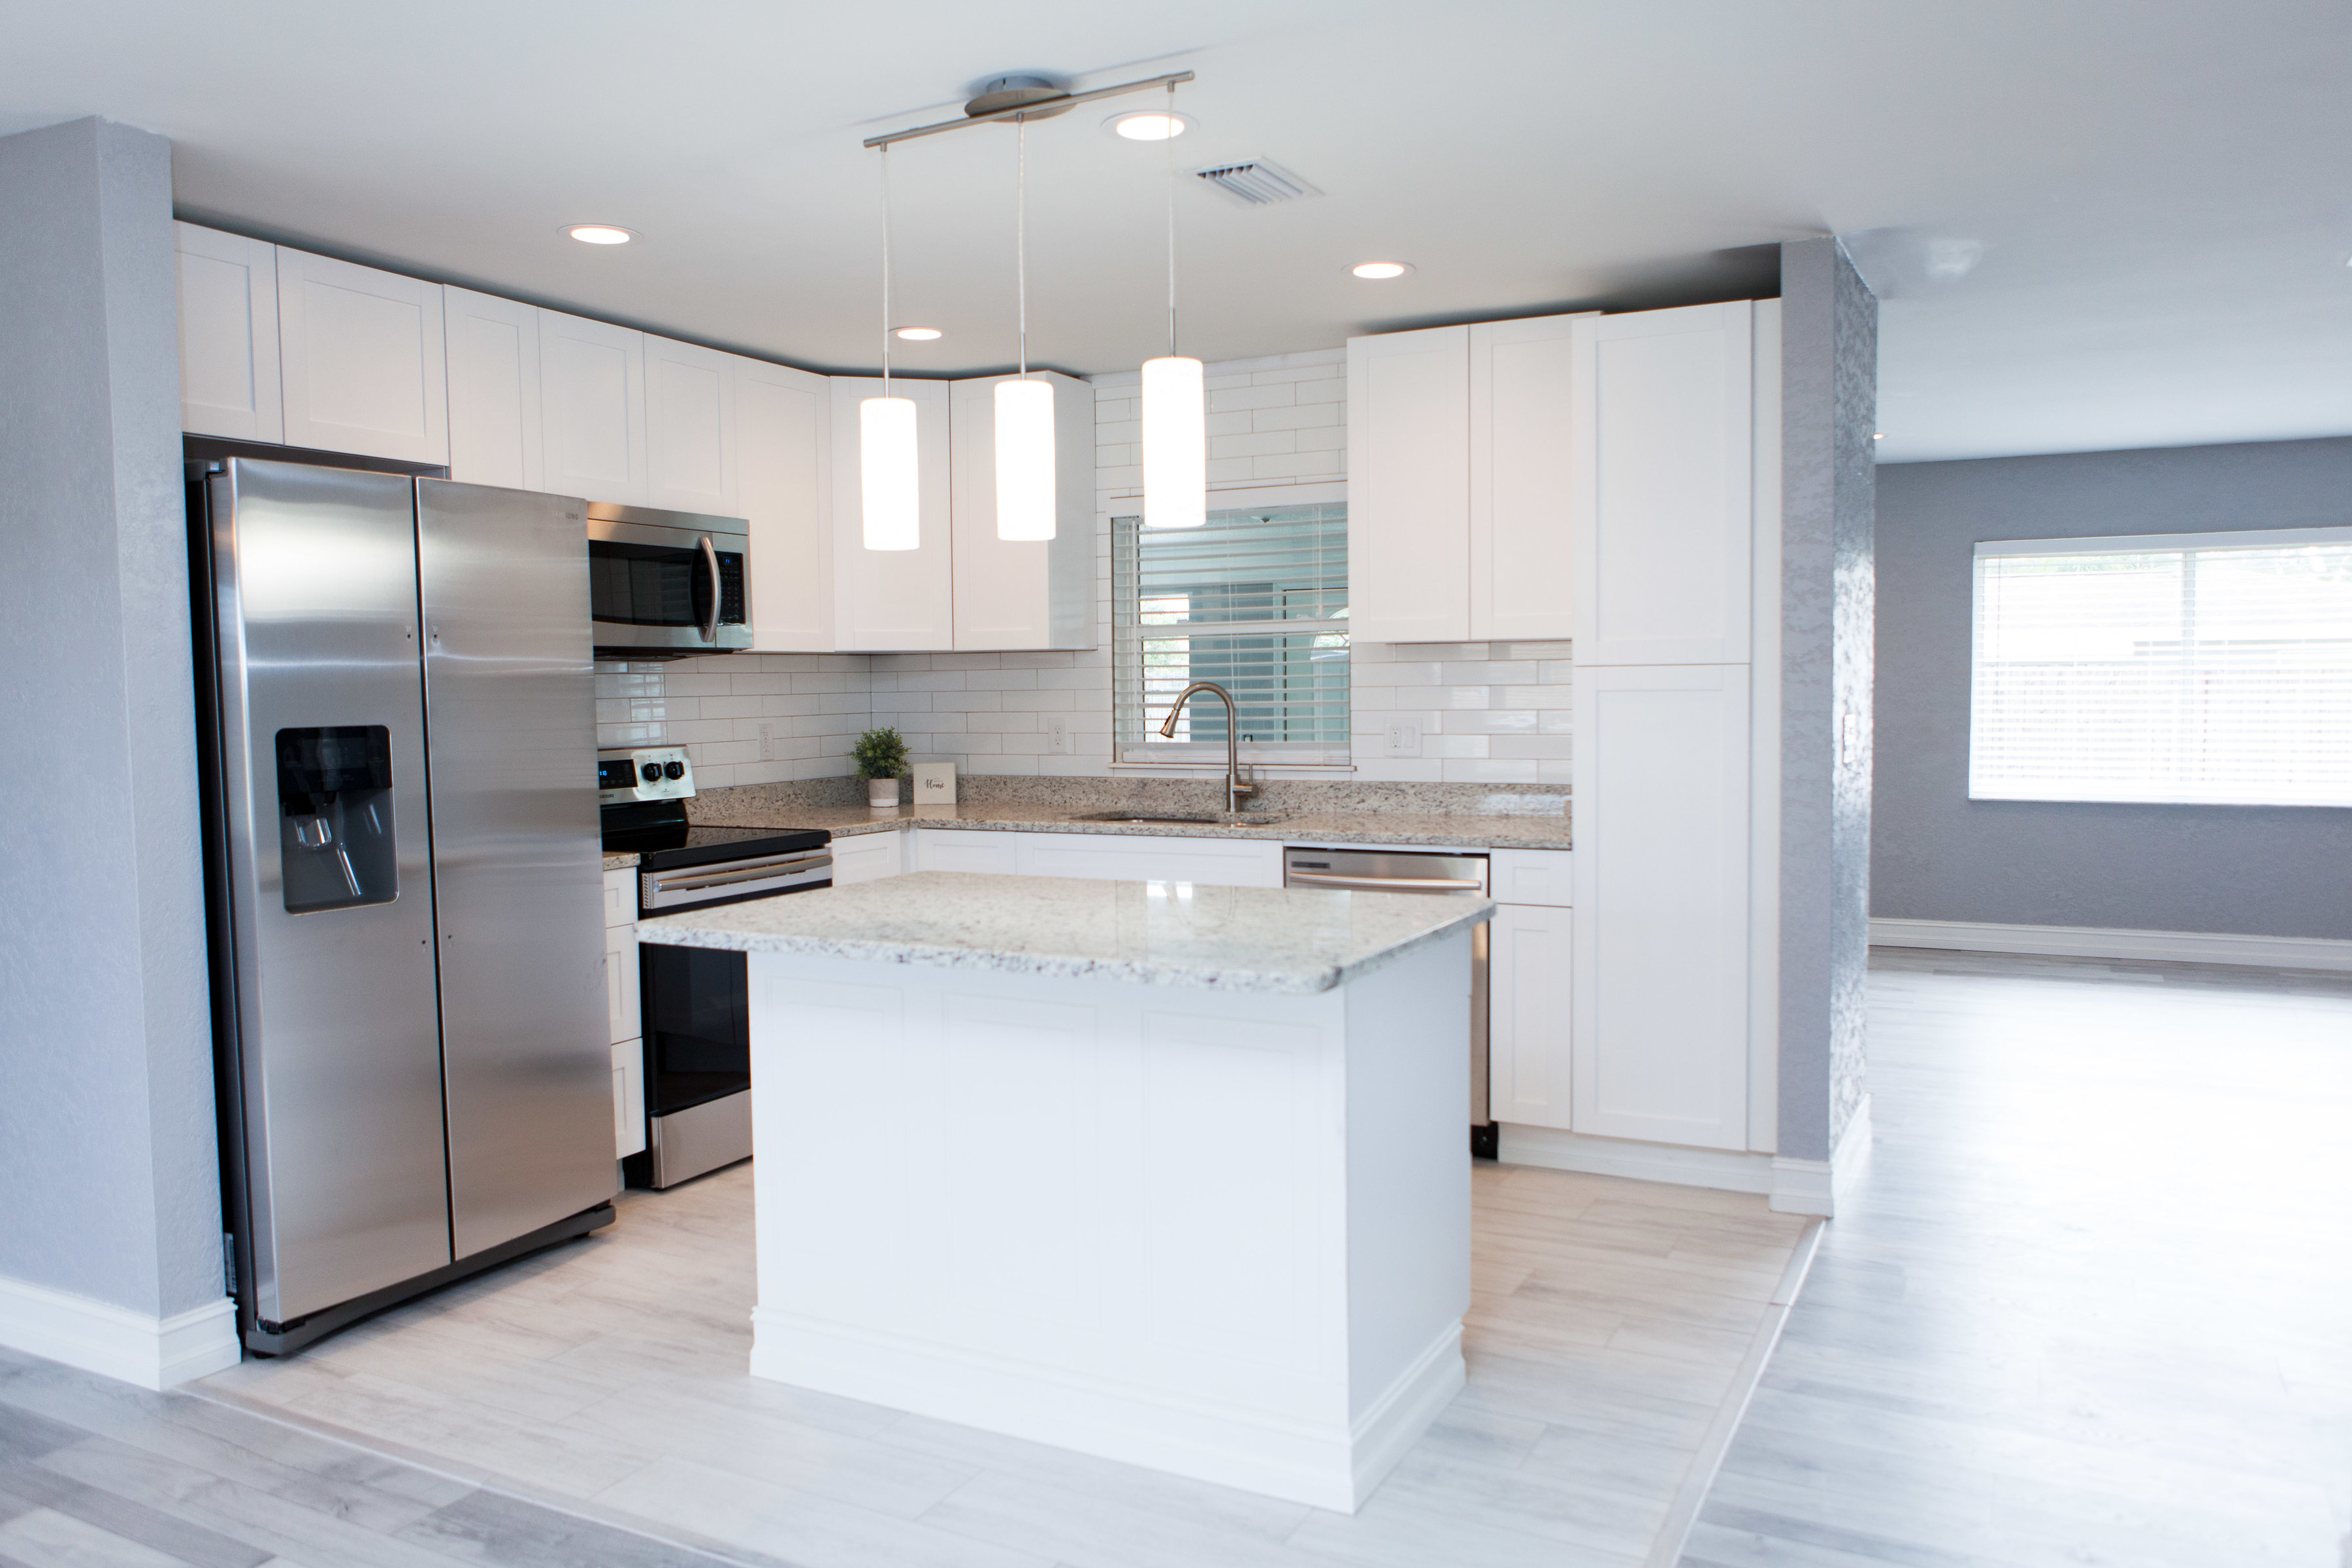 Empire Builders And Remodeling Remodeling Contractors In Venice Bathroom And Kitchen Remodeling Tile Installer Flooring Contractor